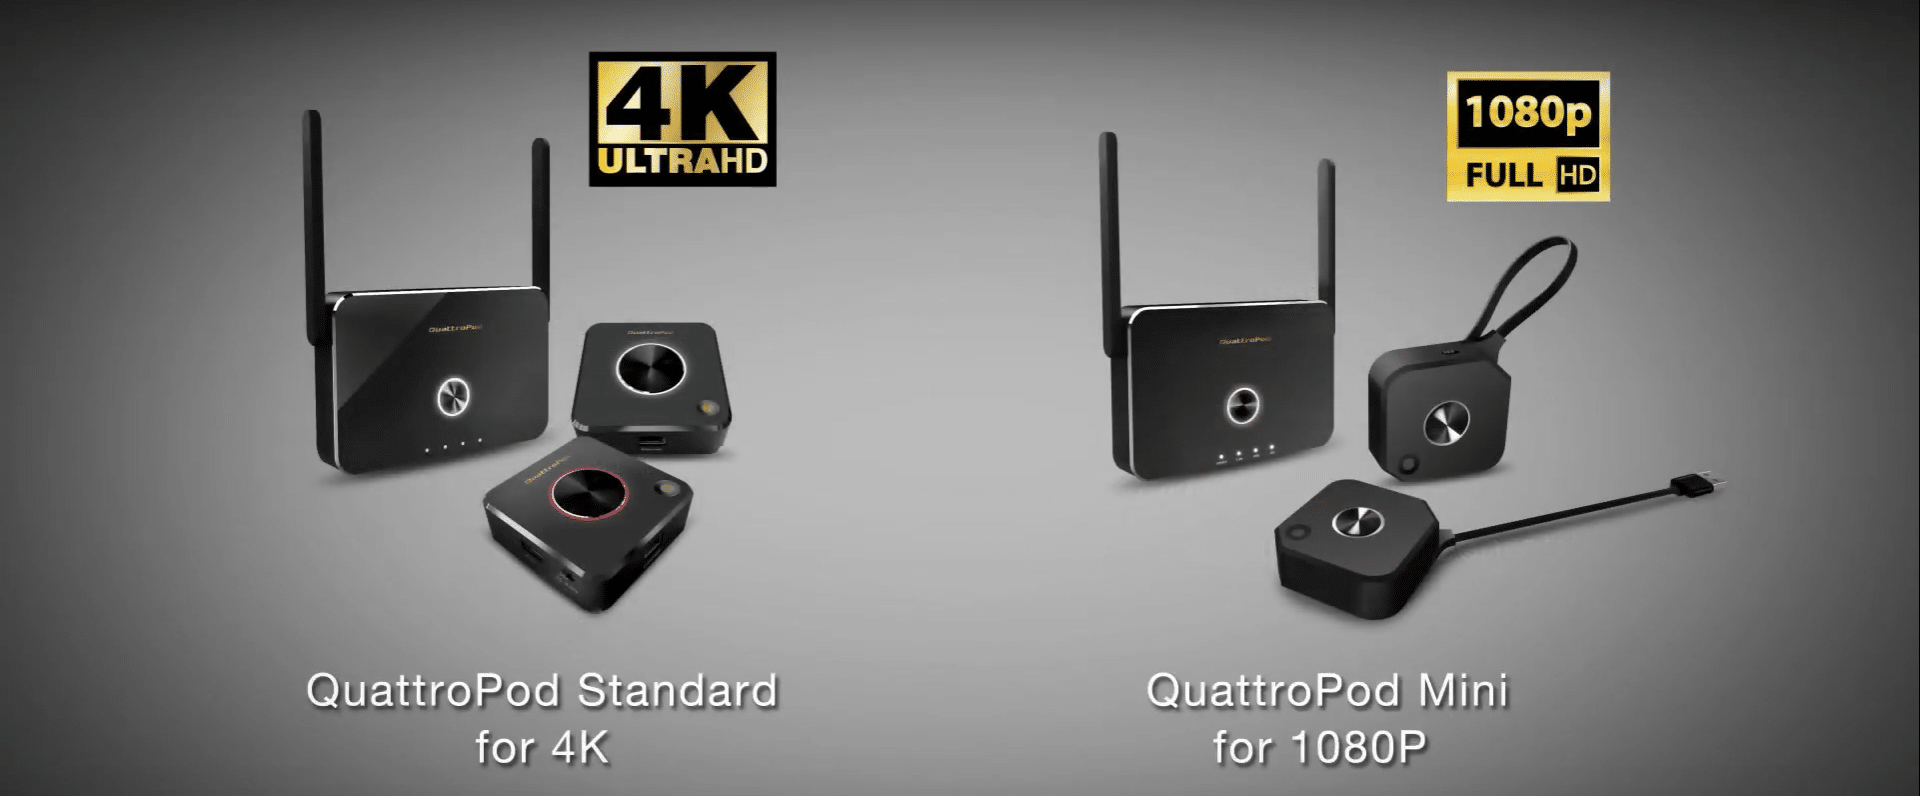 QuattroPod Standard supports 4K resolutions and QuattroPod Mini supports 1080P resolutions that fulfill different user's needs.